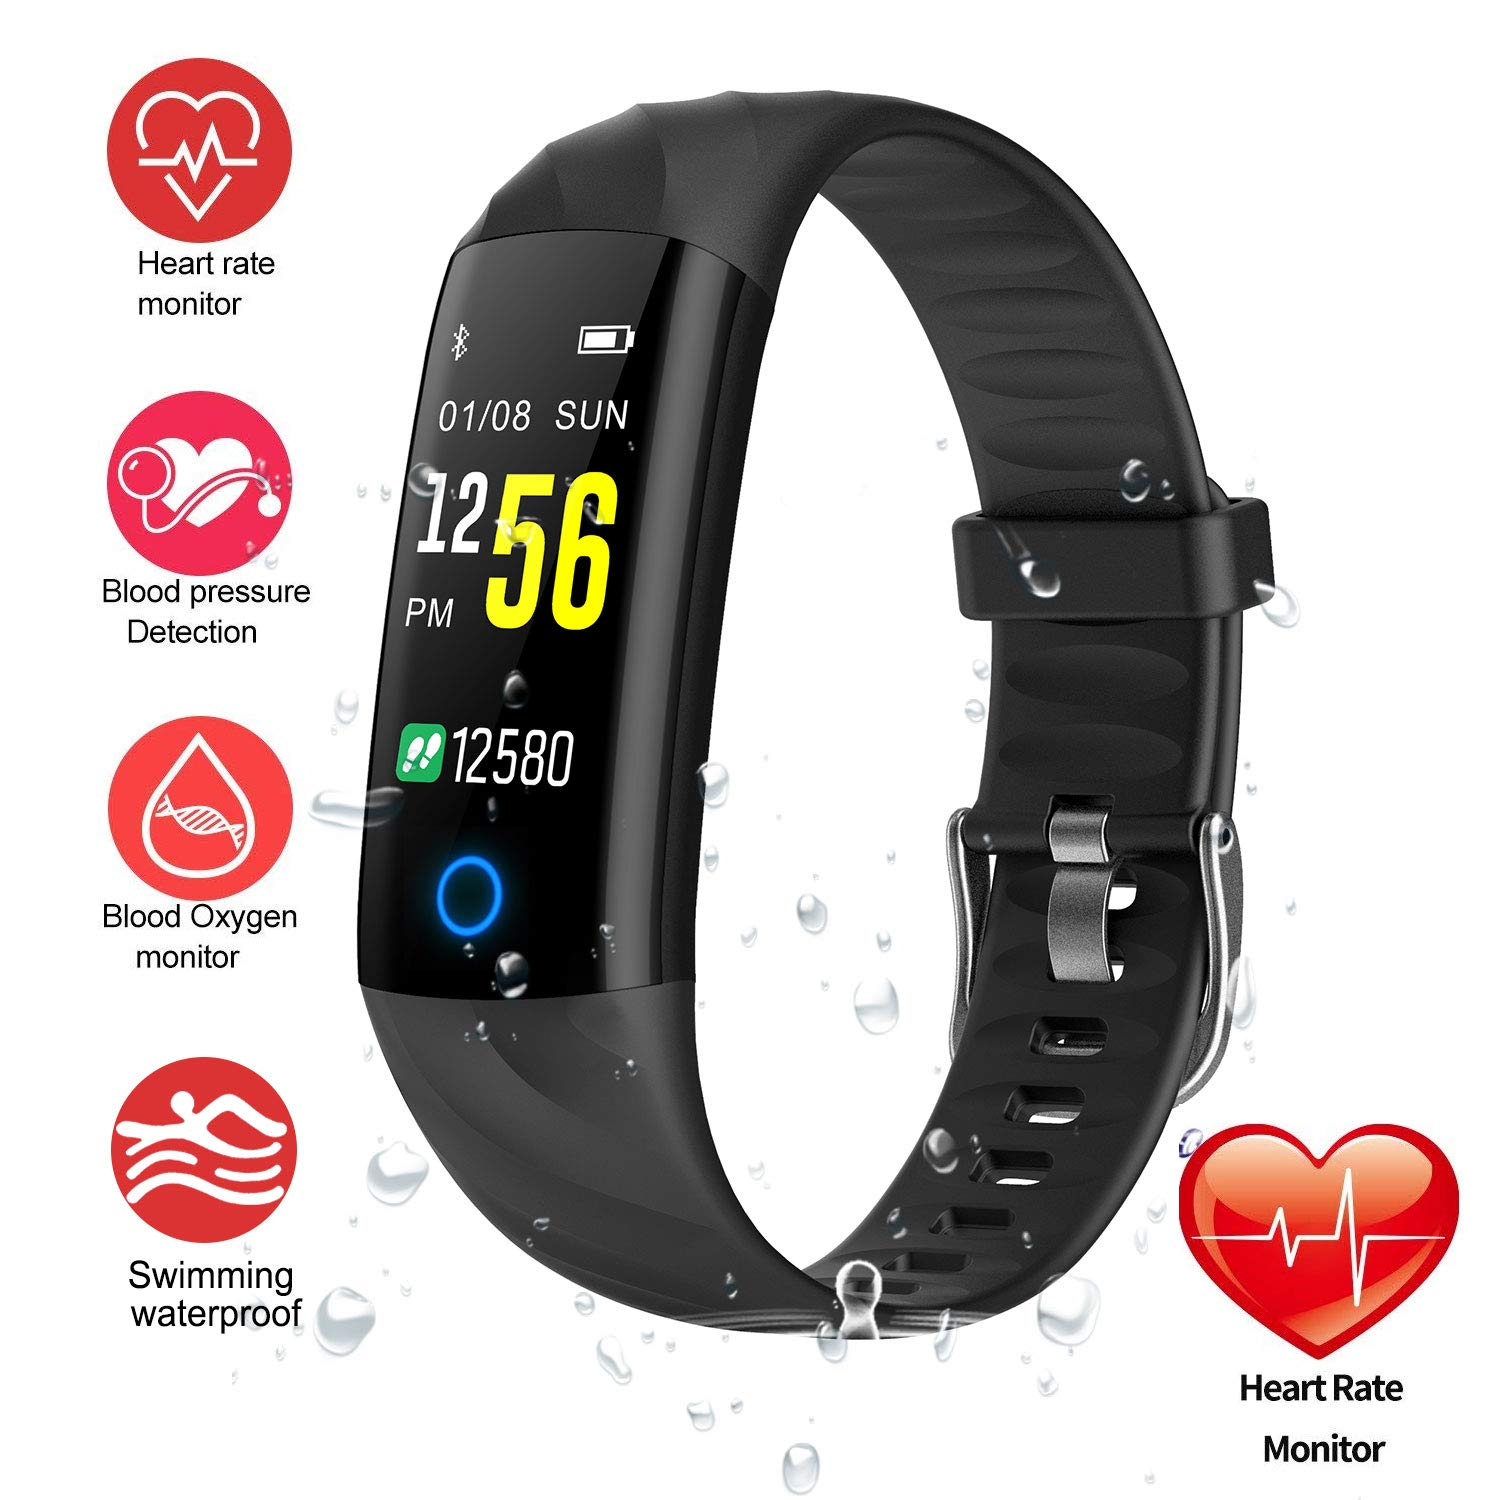 Fitness Tracker, Activity Tracker Watch with Heart Rate Monitor IP68 Waterproof Fitness Watch Step Counter Calories Counter Sleep Monitor Pedometer Watch for Men Women and kids for iOS Android